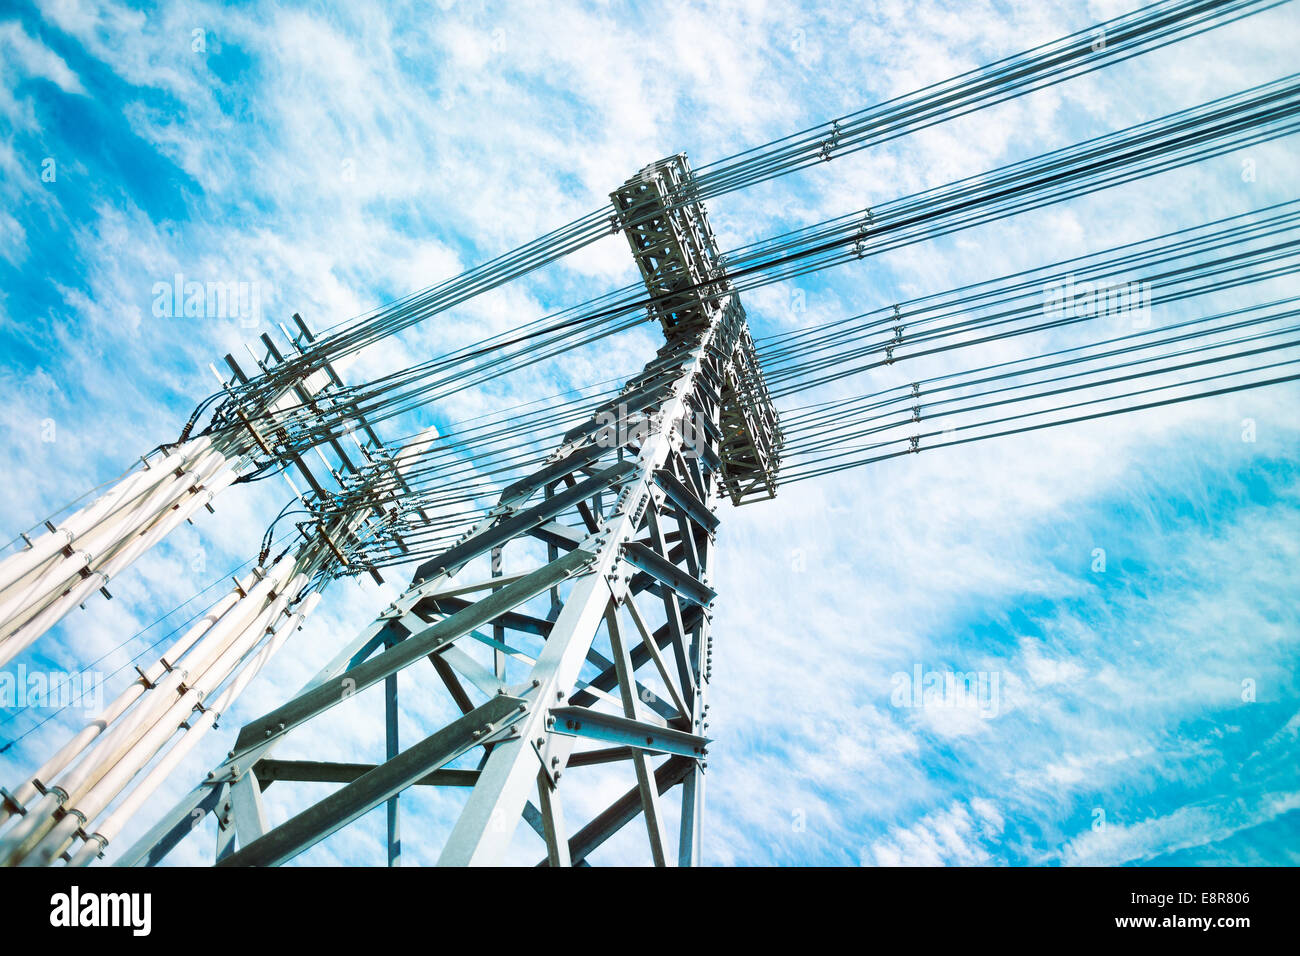 Power lines tower - Stock Image